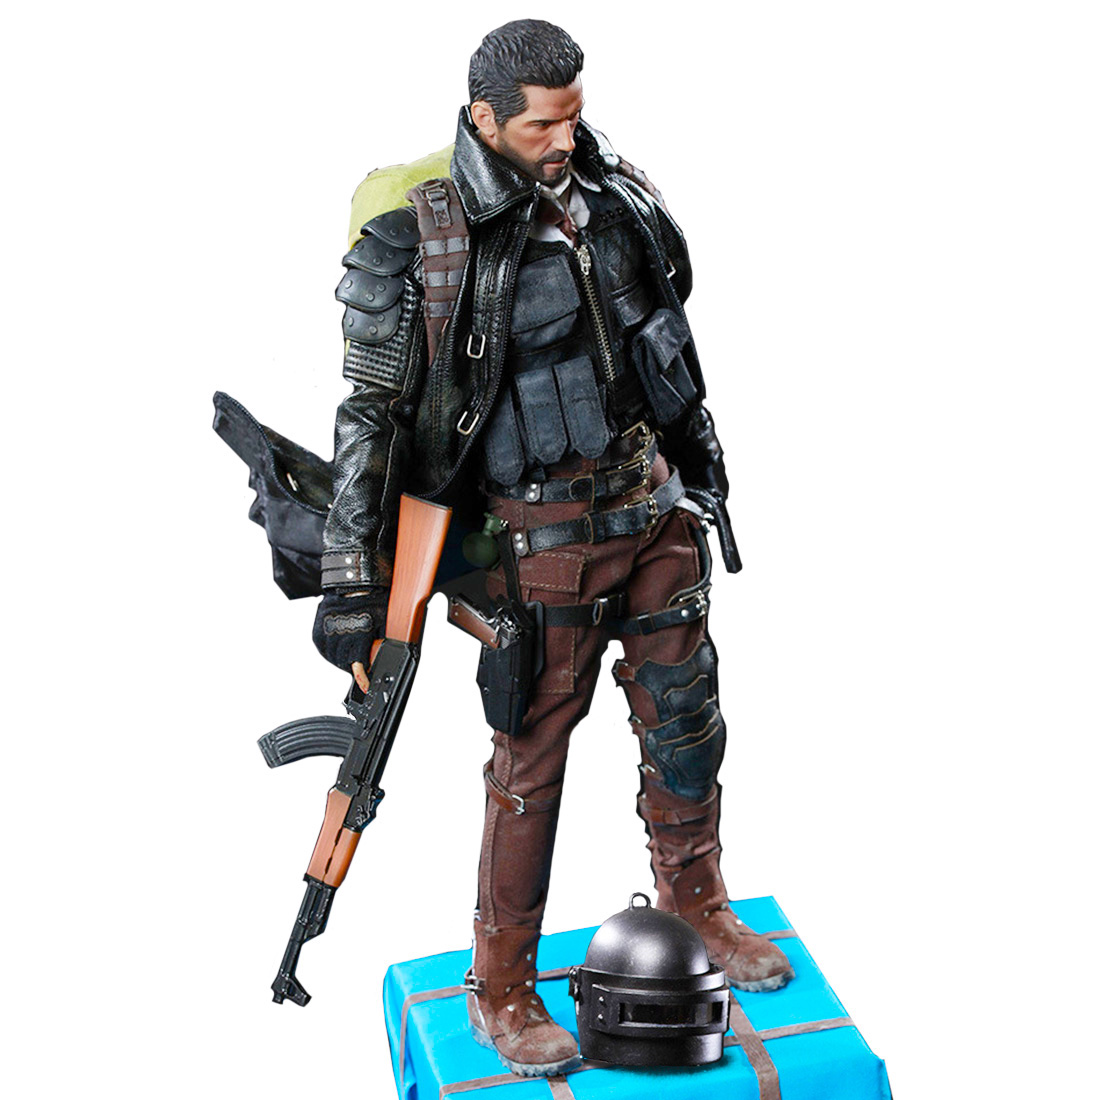 FLAGSET 1/6 Survival Warrior Soldier Model Action Figure Model Toys & HobbiesFLAGSET 1/6 Survival Warrior Soldier Model Action Figure Model Toys & Hobbies